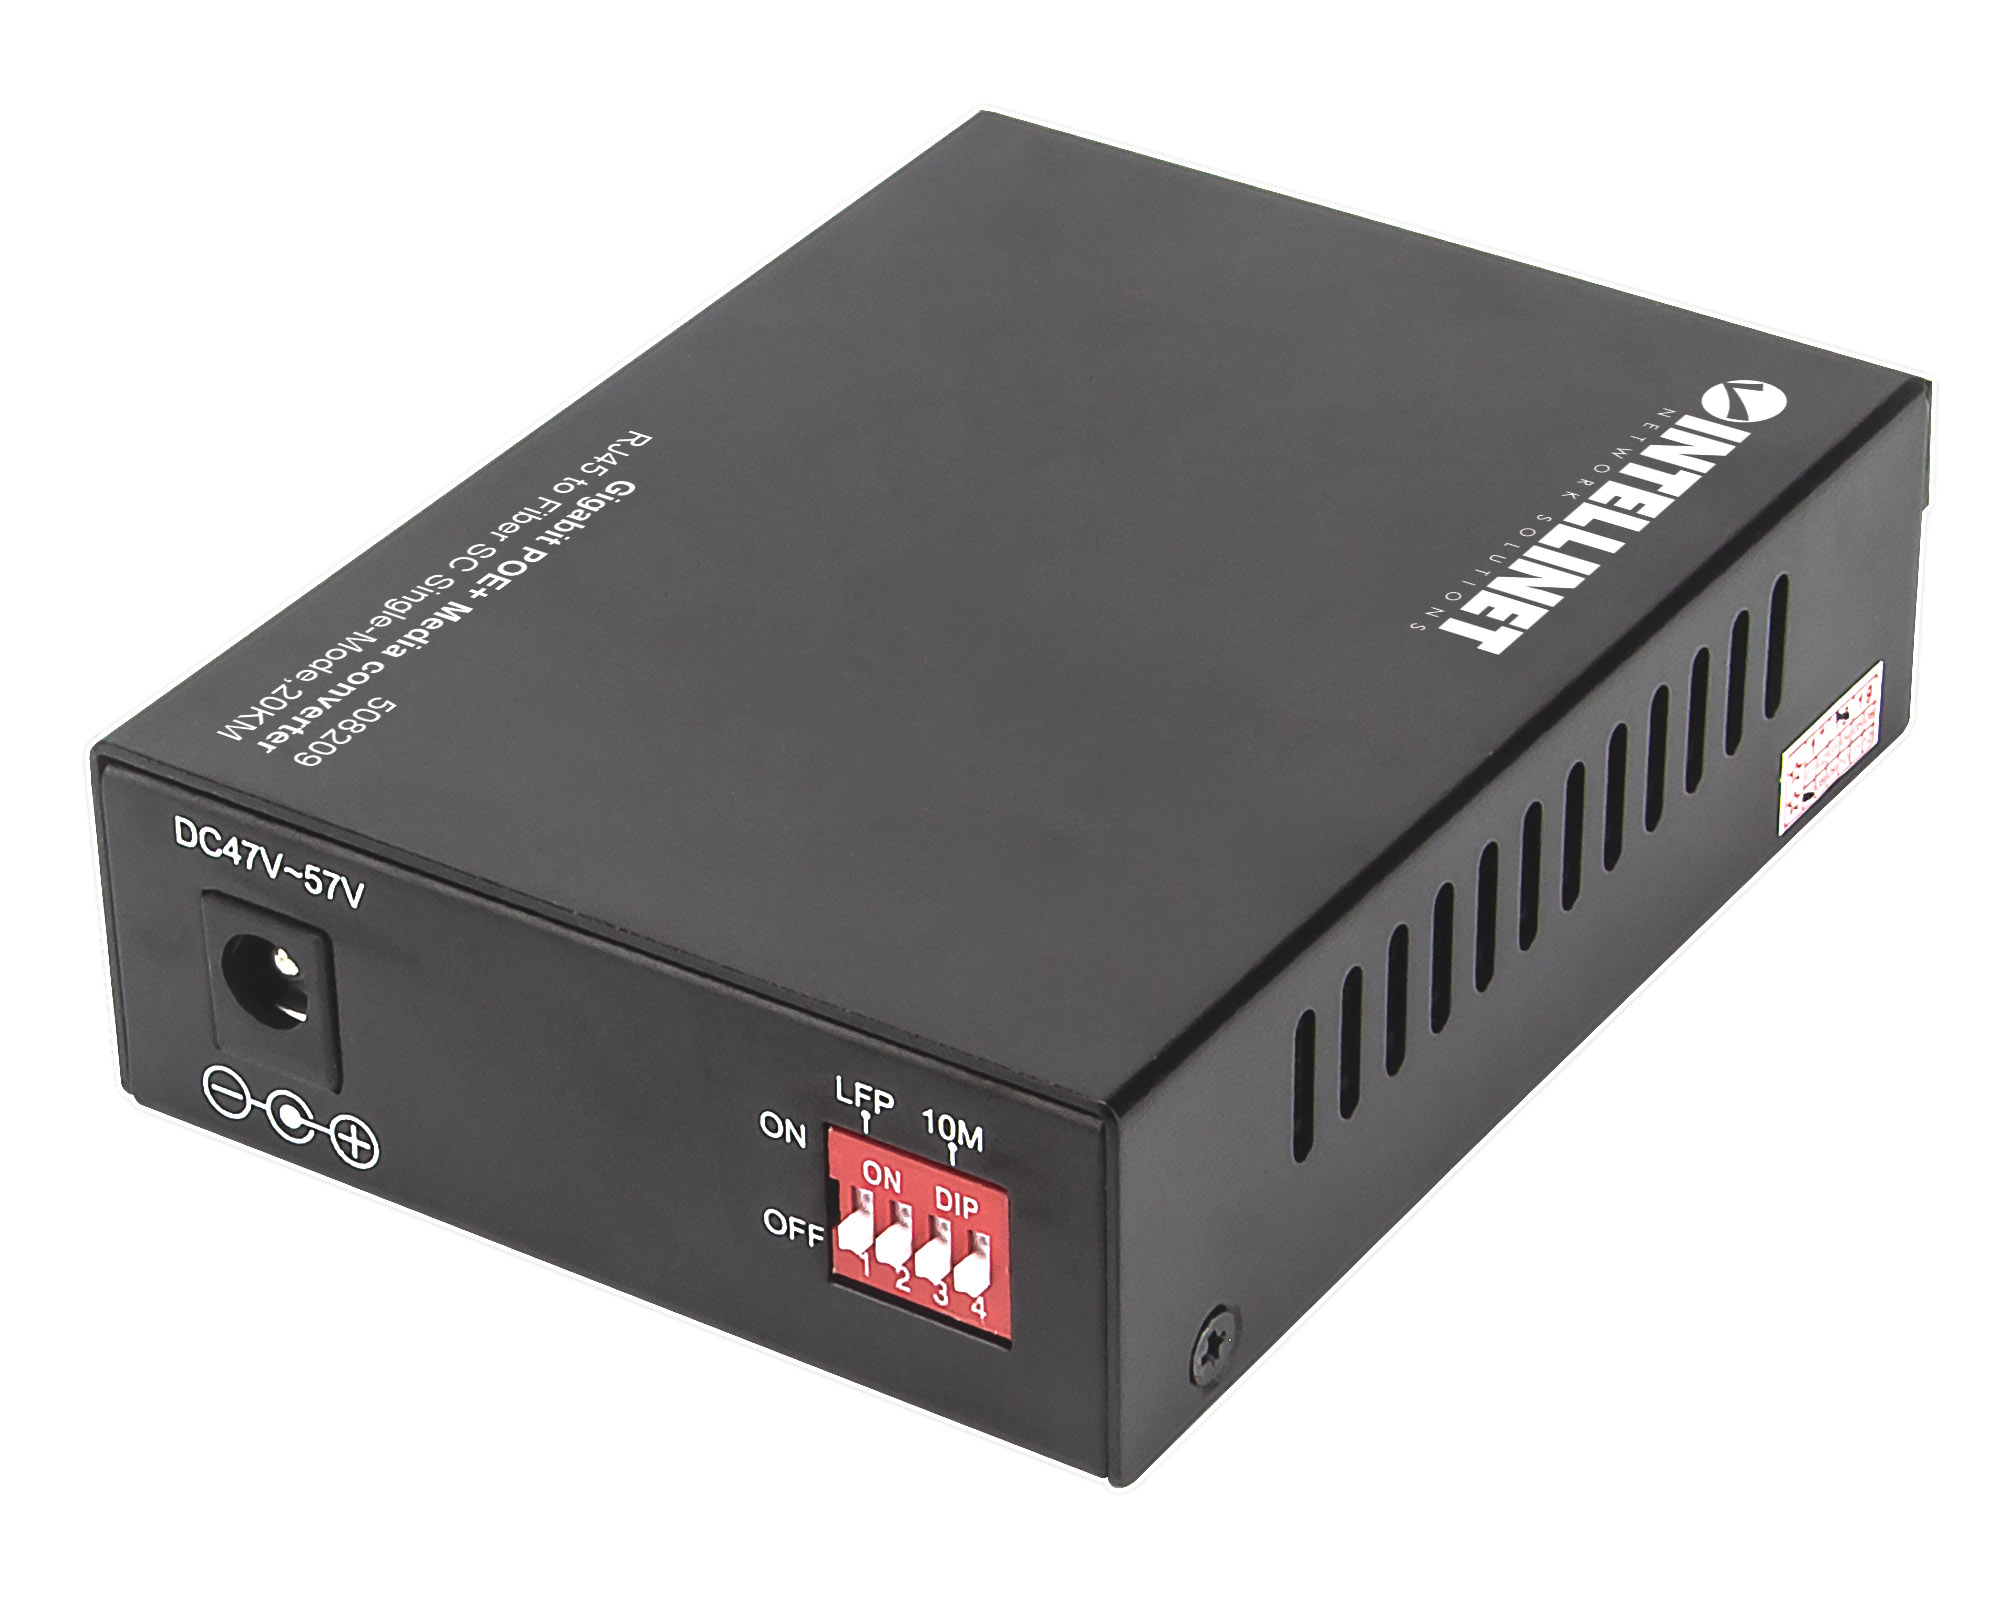 Gigabit PoE+ Media Converter